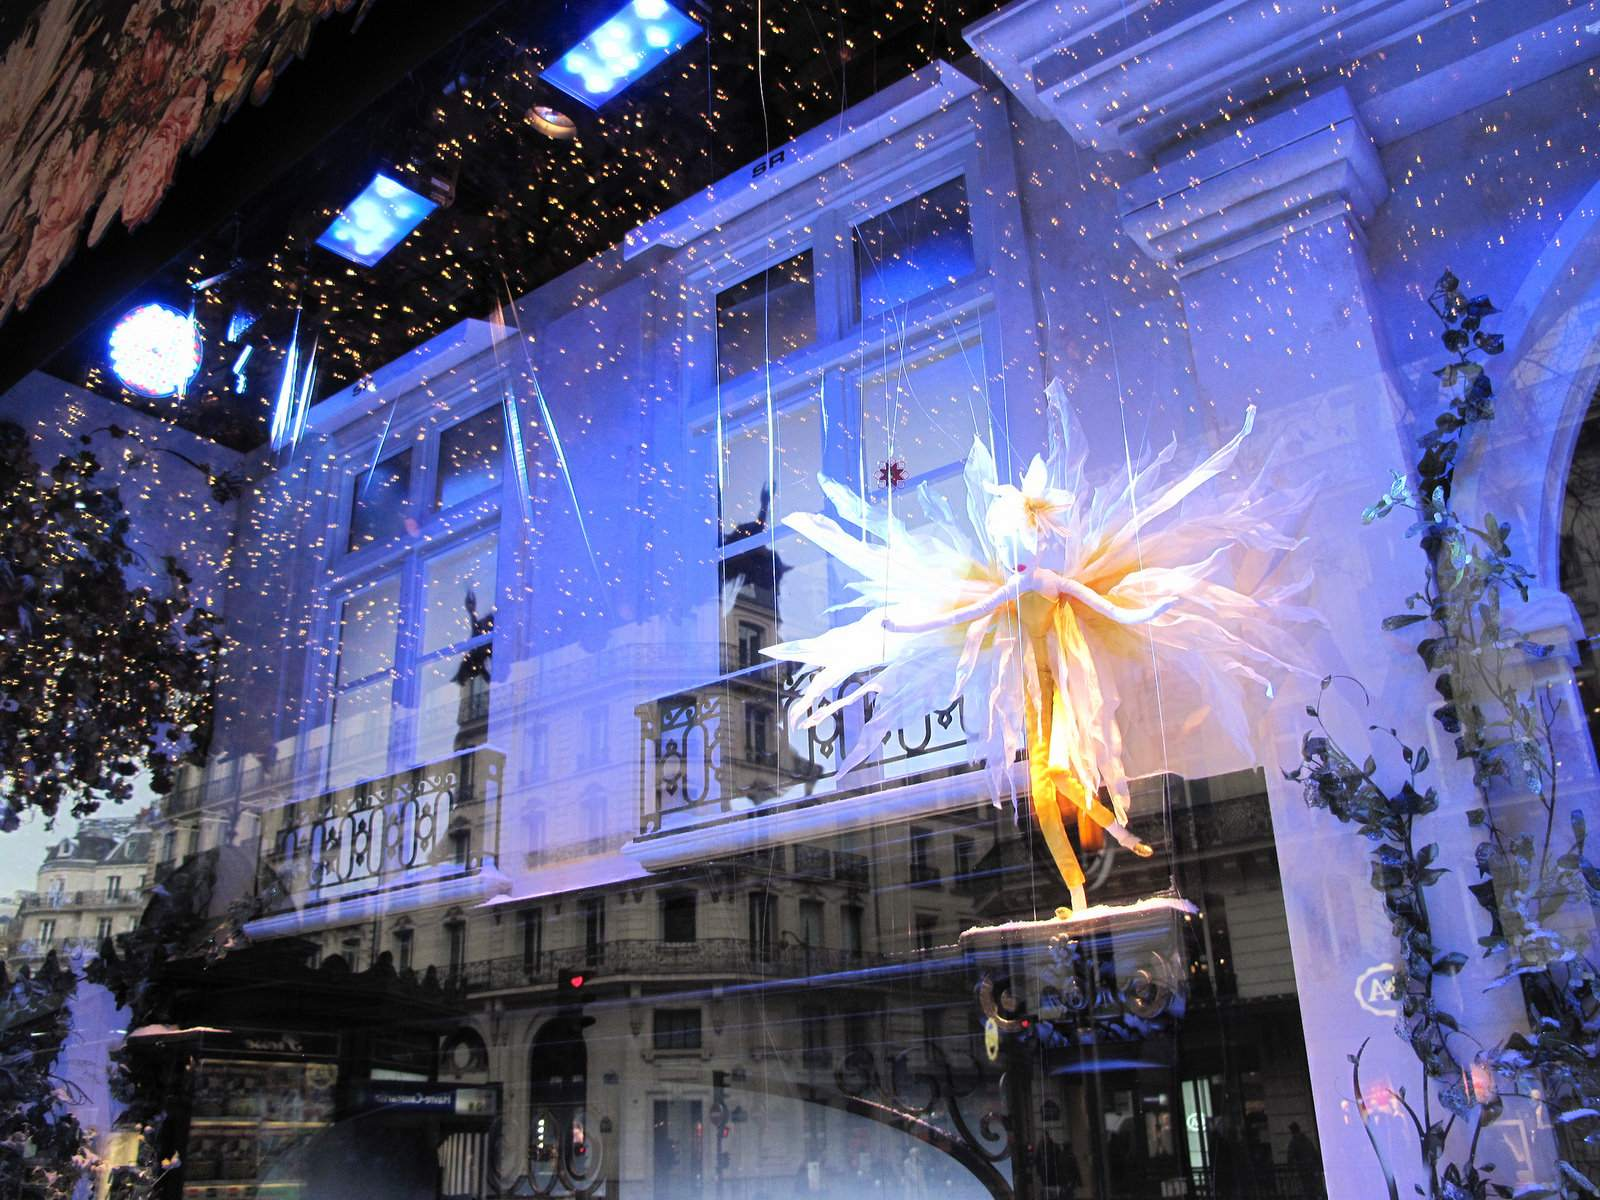 vitrines noel16 Christmas window displays in Paris